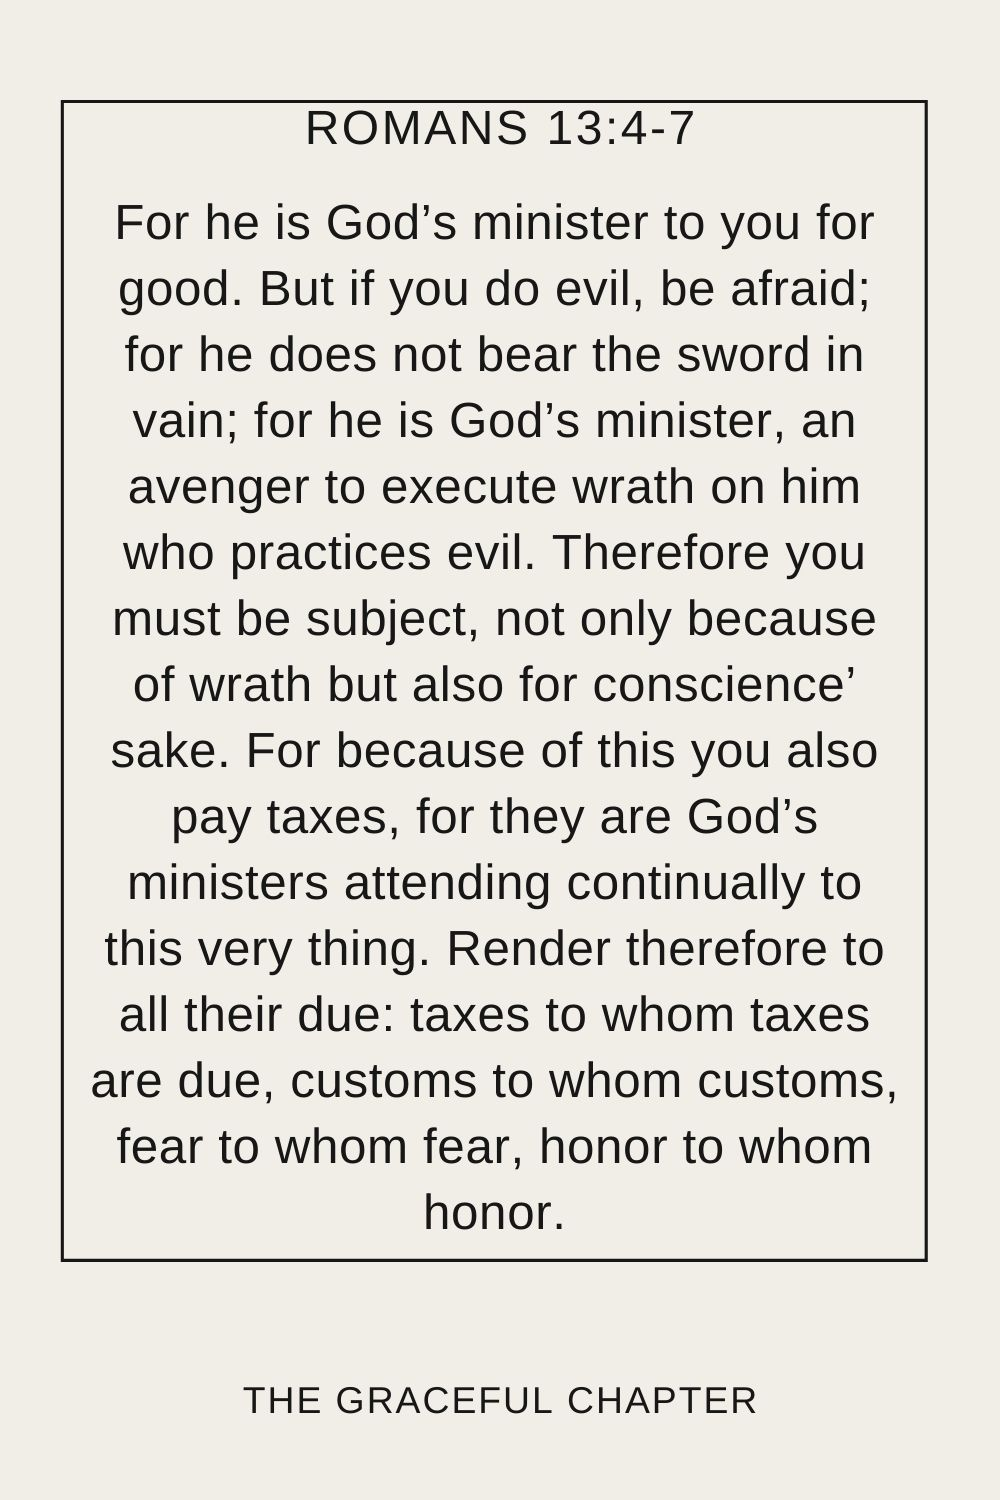 For he is God's minister to you for good. But if you do evil, be afraid; for he does not bear the sword in vain; for he is God's minister, an avenger to execute wrath on him who practices evil. Therefore you must be subject, not only because of wrath but also for conscience' sake. For because of this you also pay taxes, for they are God's ministers attending continually to this very thing. Render therefore to all their due: taxes to whom taxes are due, customs to whom customs, fear to whom fear, honor to whom honor. Romans 13:4-7